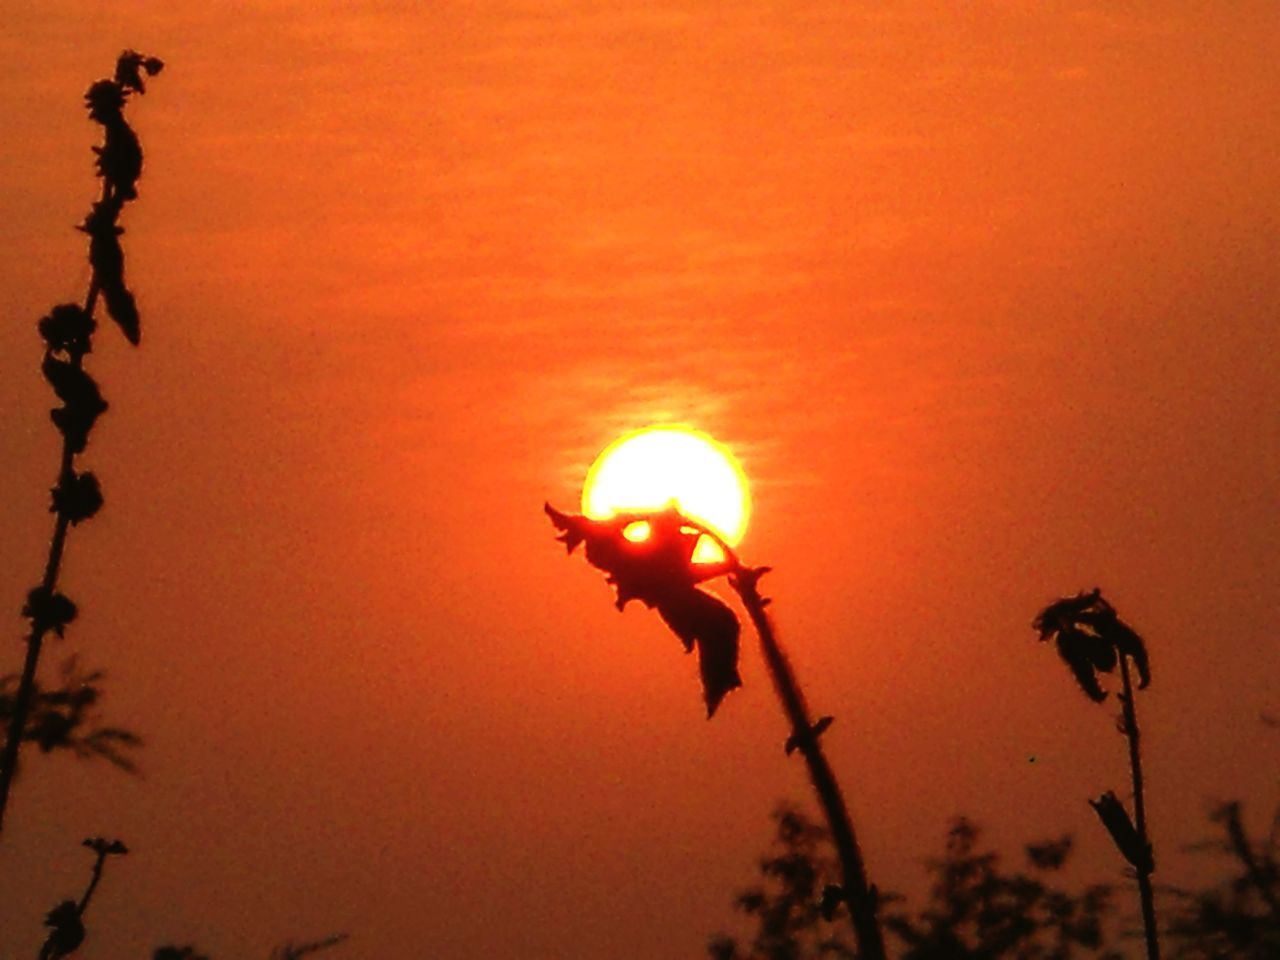 sunset, orange color, sun, nature, silhouette, flower, outdoors, growth, beauty in nature, no people, plant, sky, close-up, flower head, day